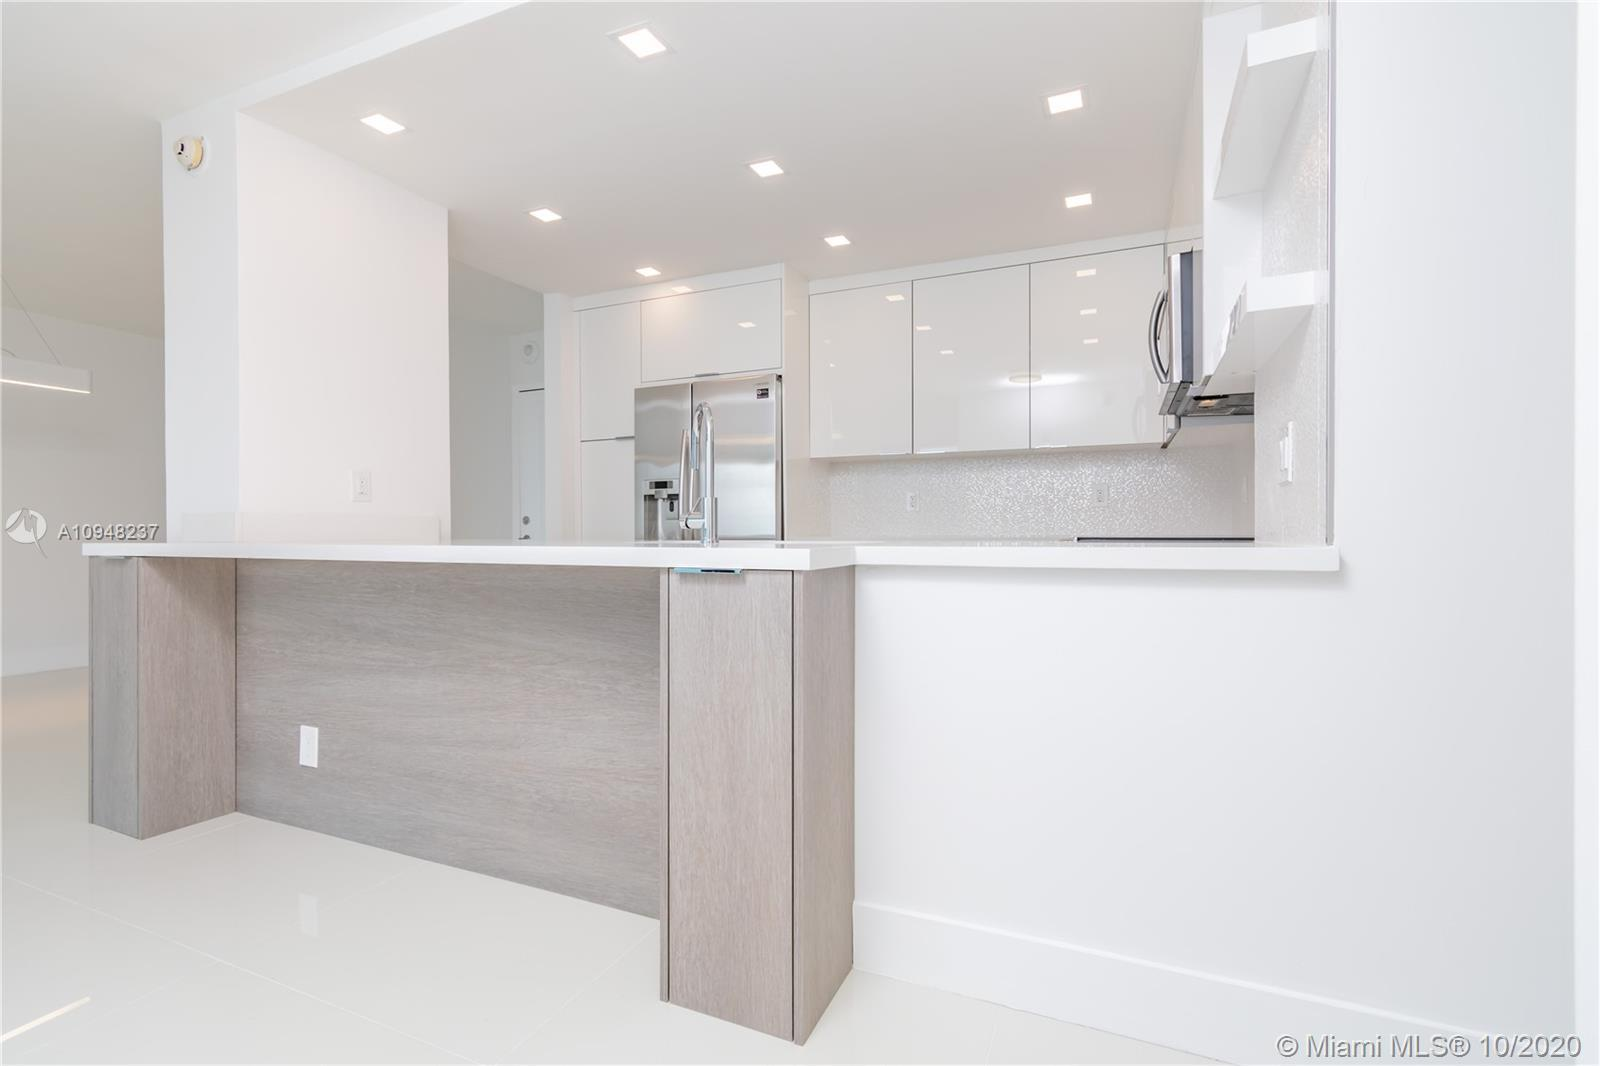 The most BEAUTIFUL 2/2 unit in Arlen House East. SPACIOUS living / dining room area opens up to a la